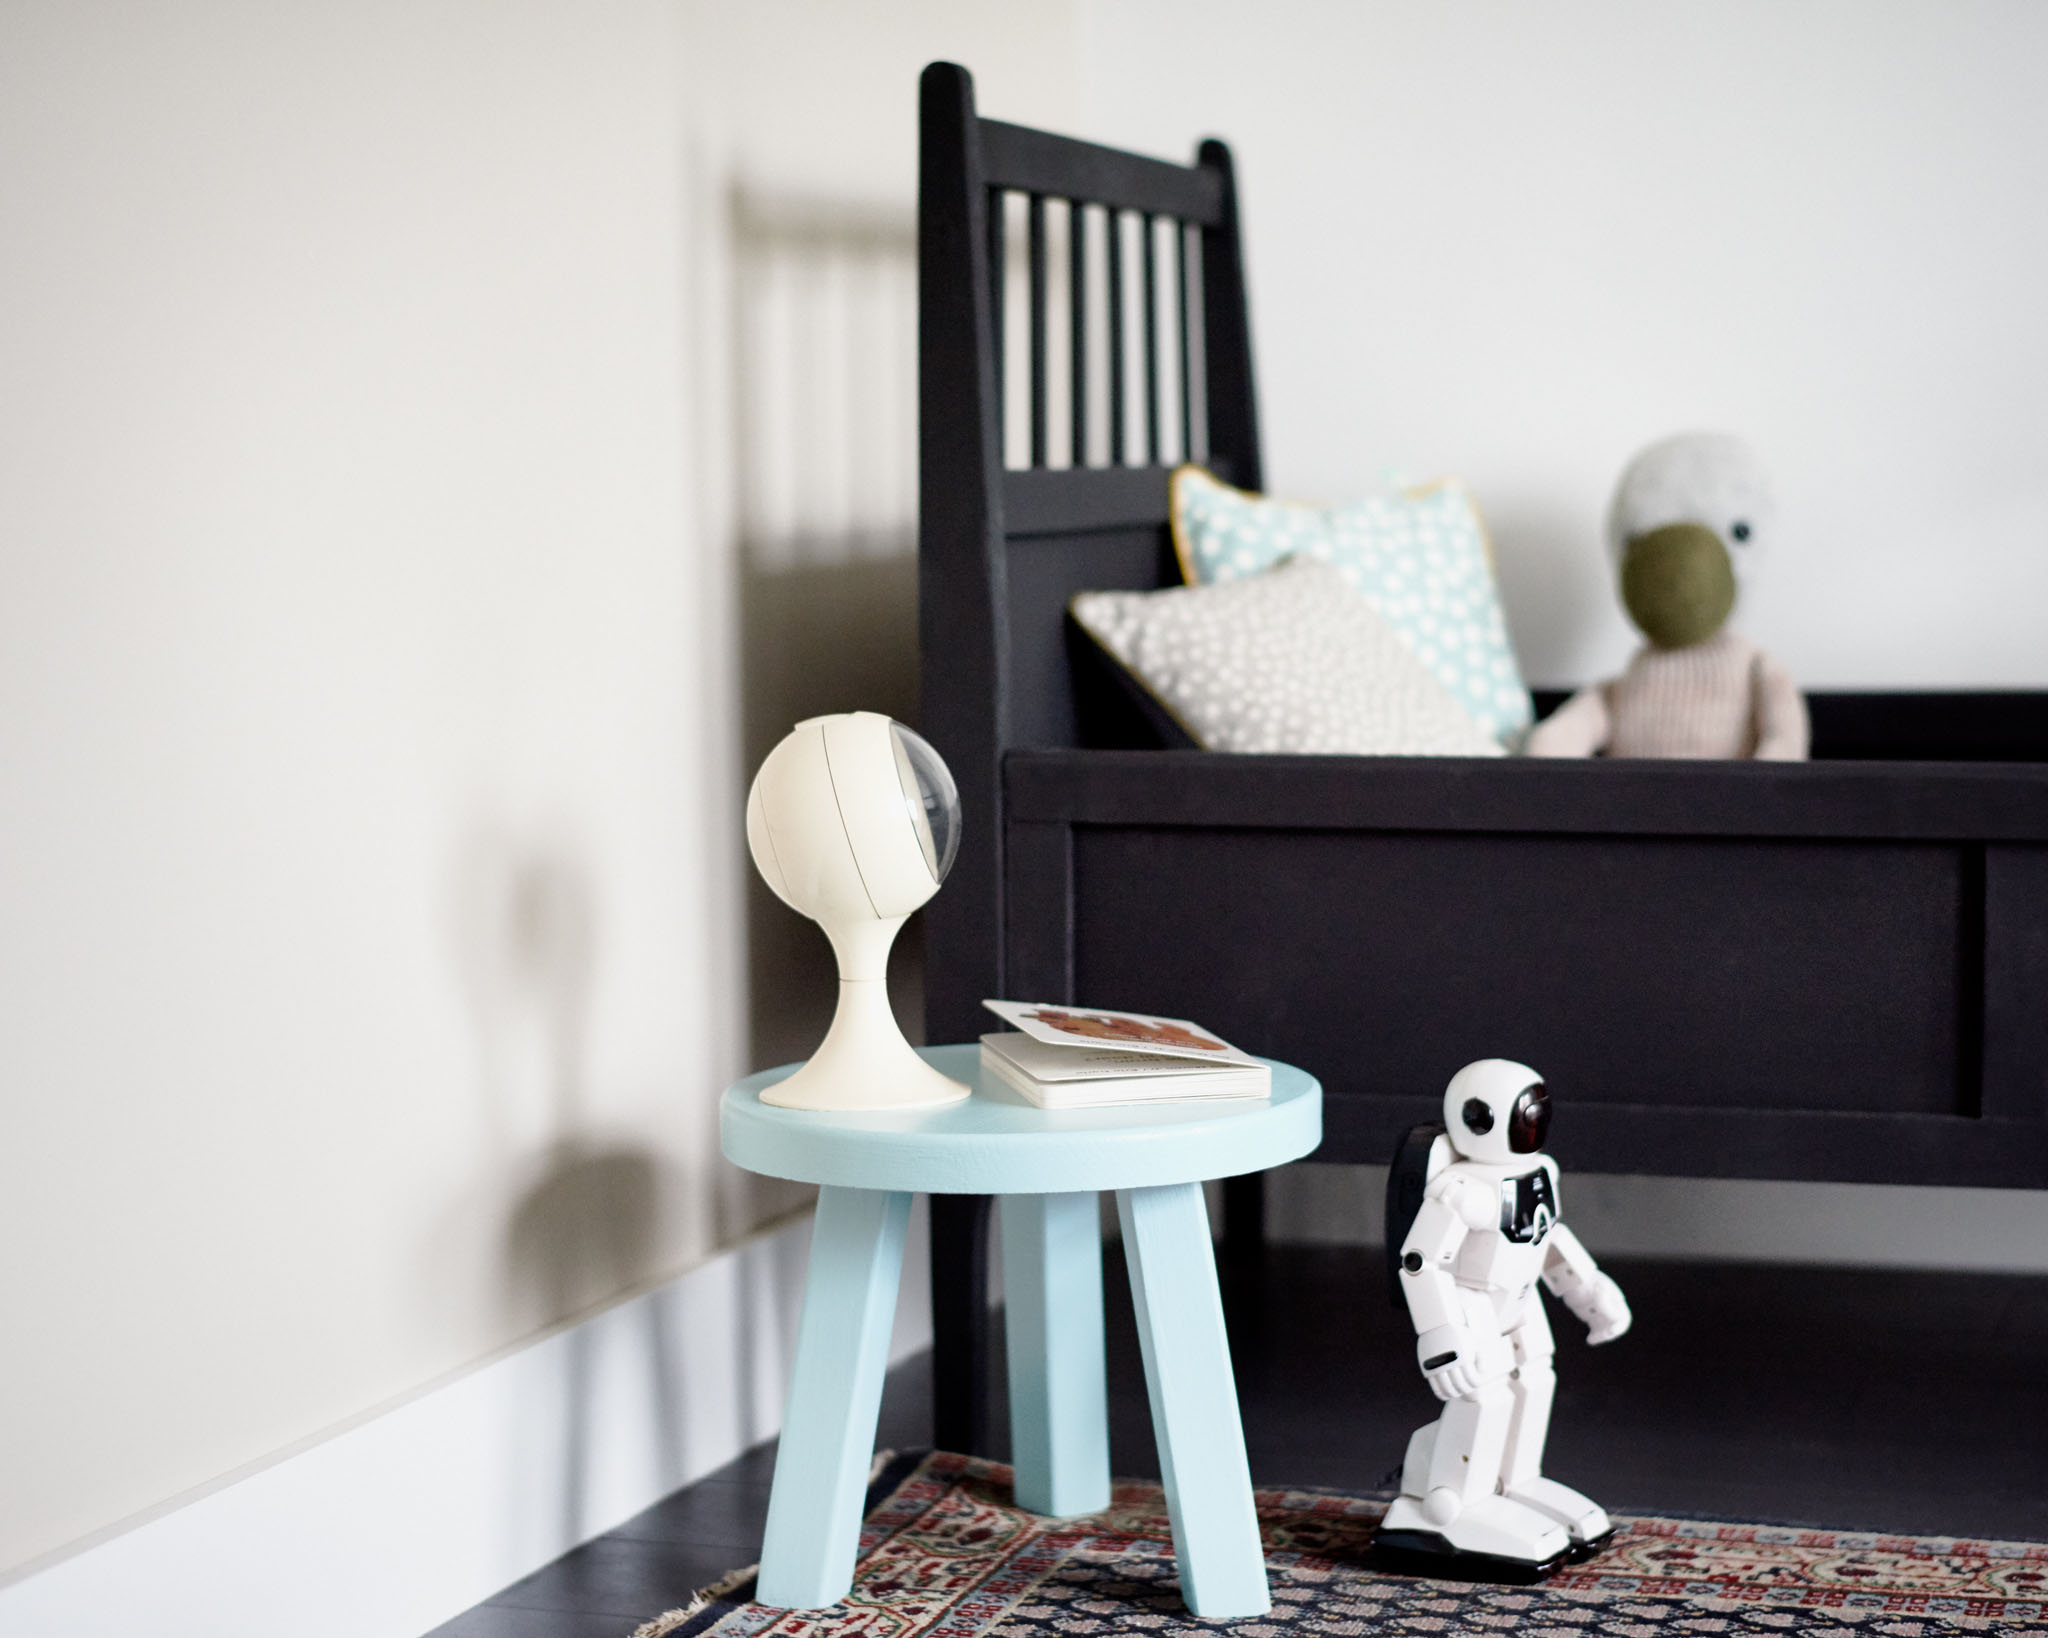 Introduce Scandinavian style to your kid's bedroom for a new look